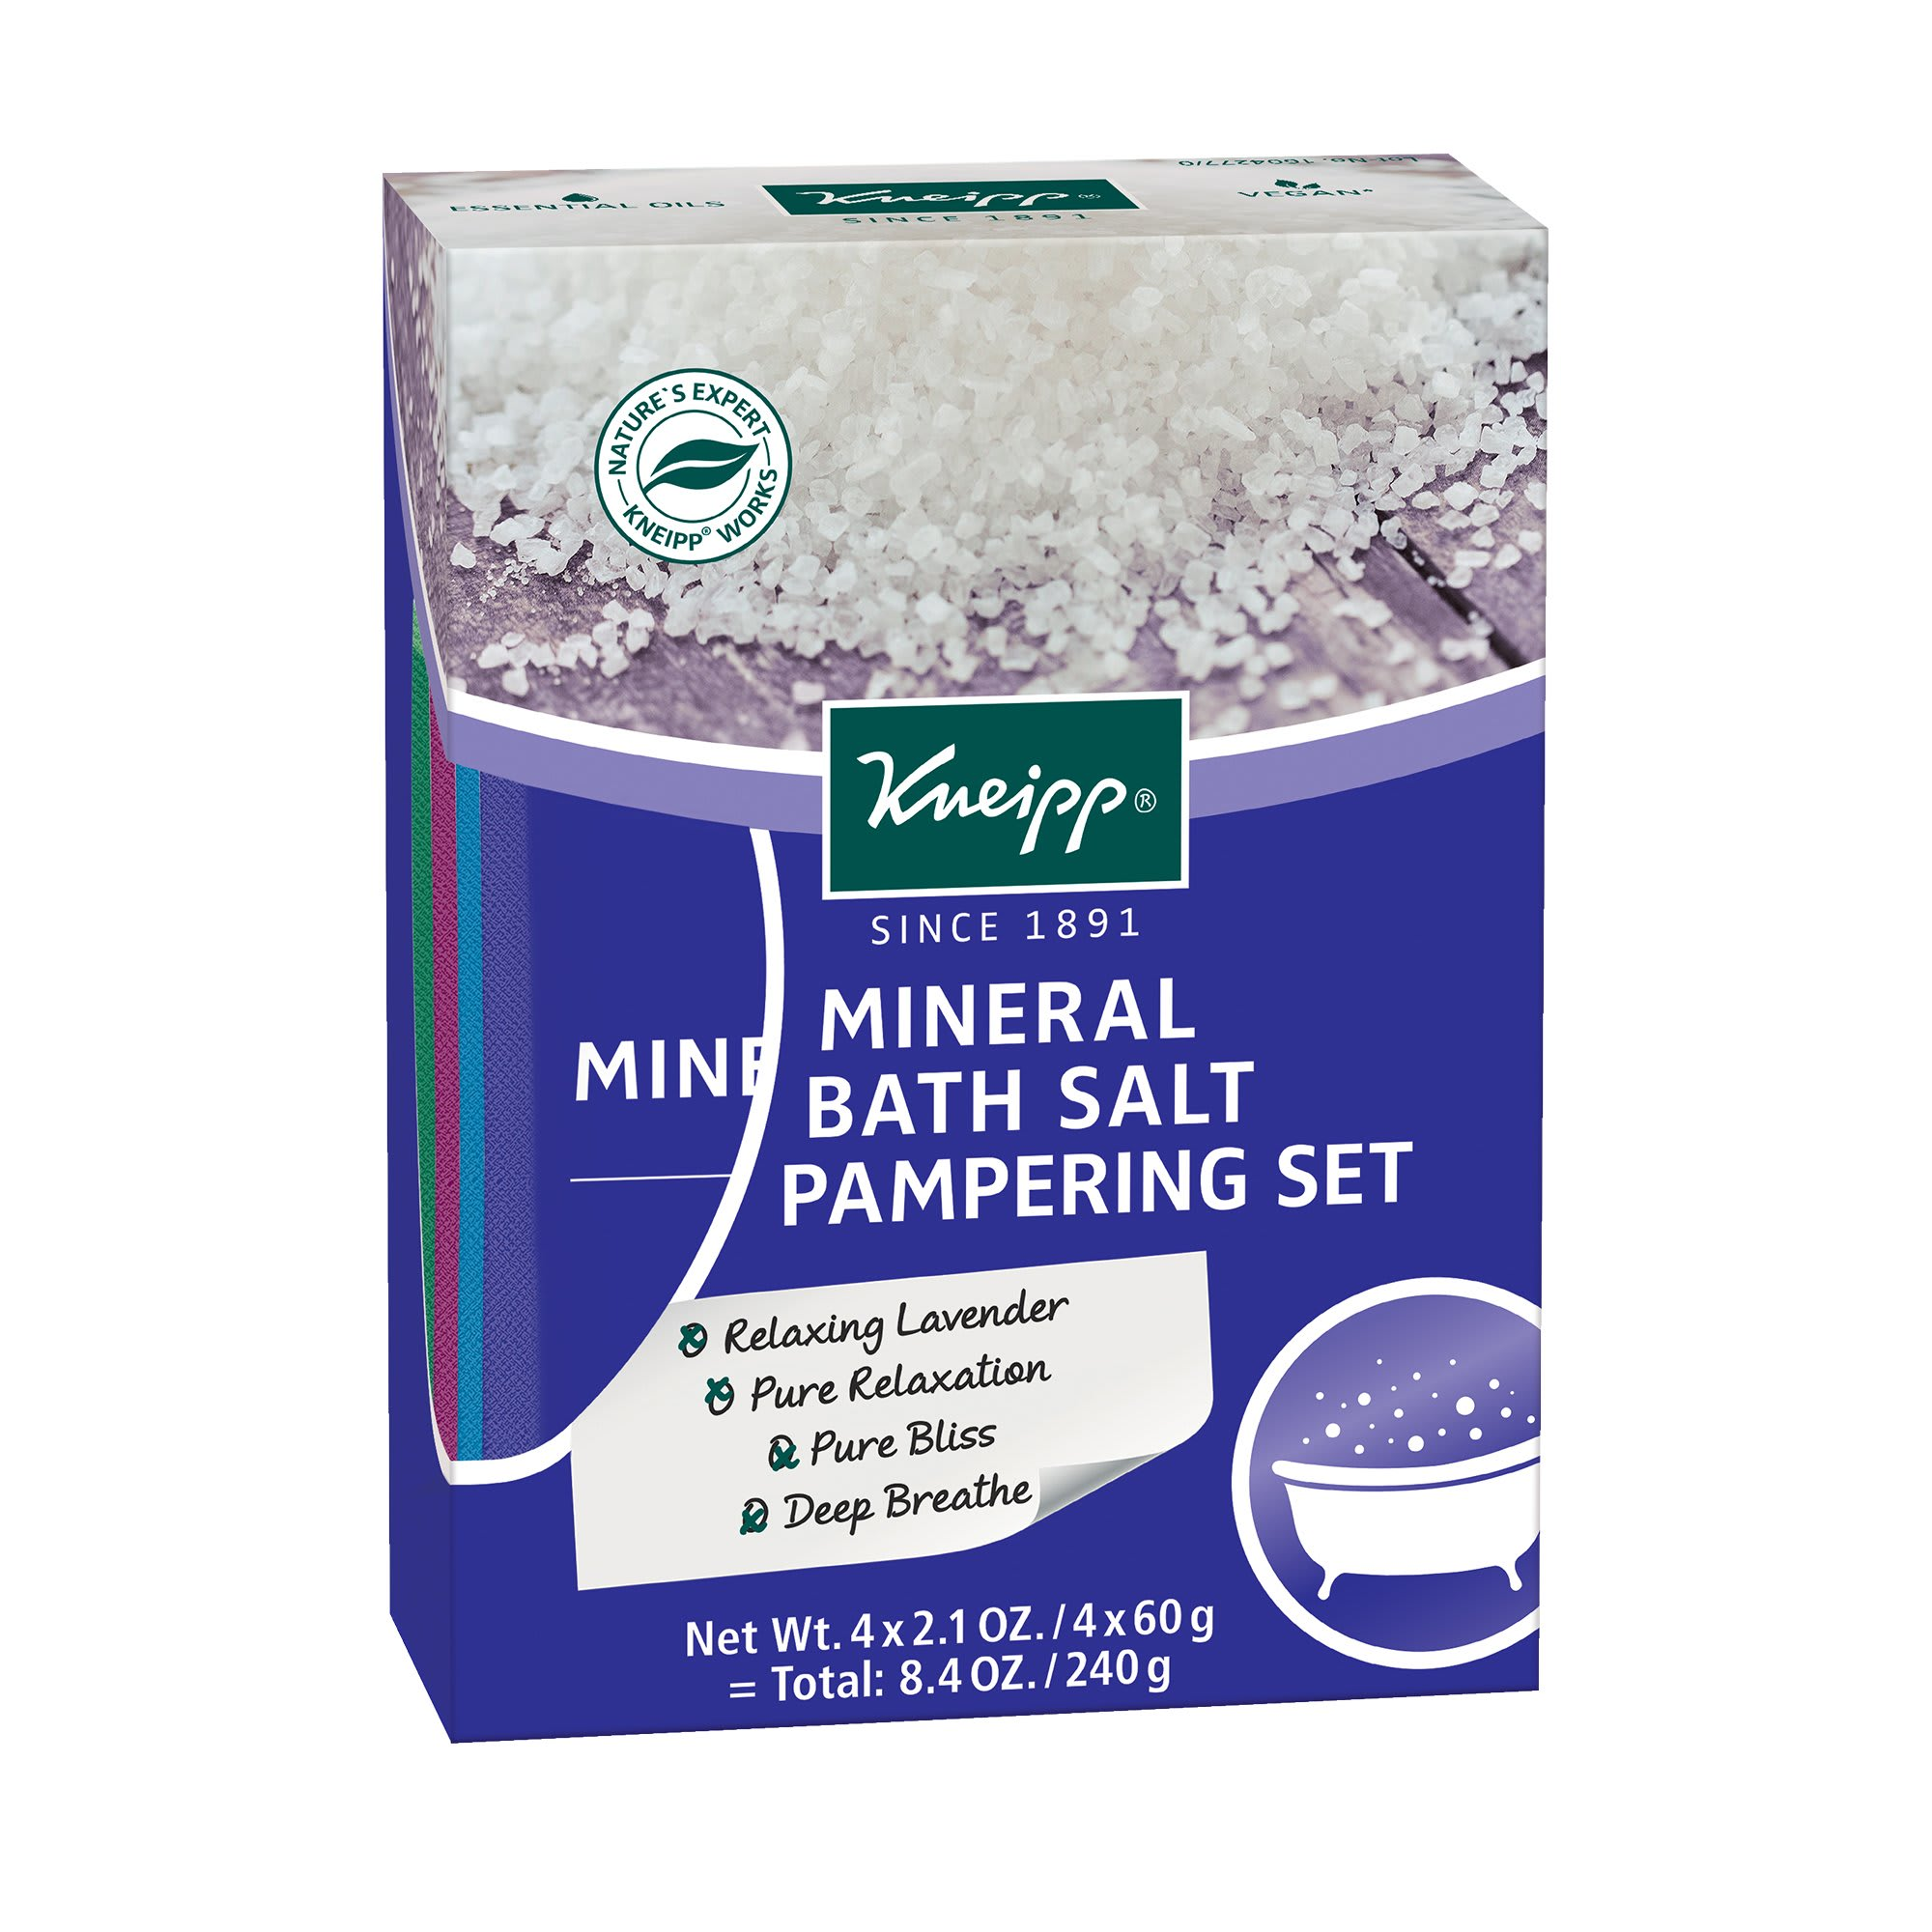 Kneipp Holiday Pampering Mineral Bath Salt 4 Piece Gift Set 2.01 Oz.